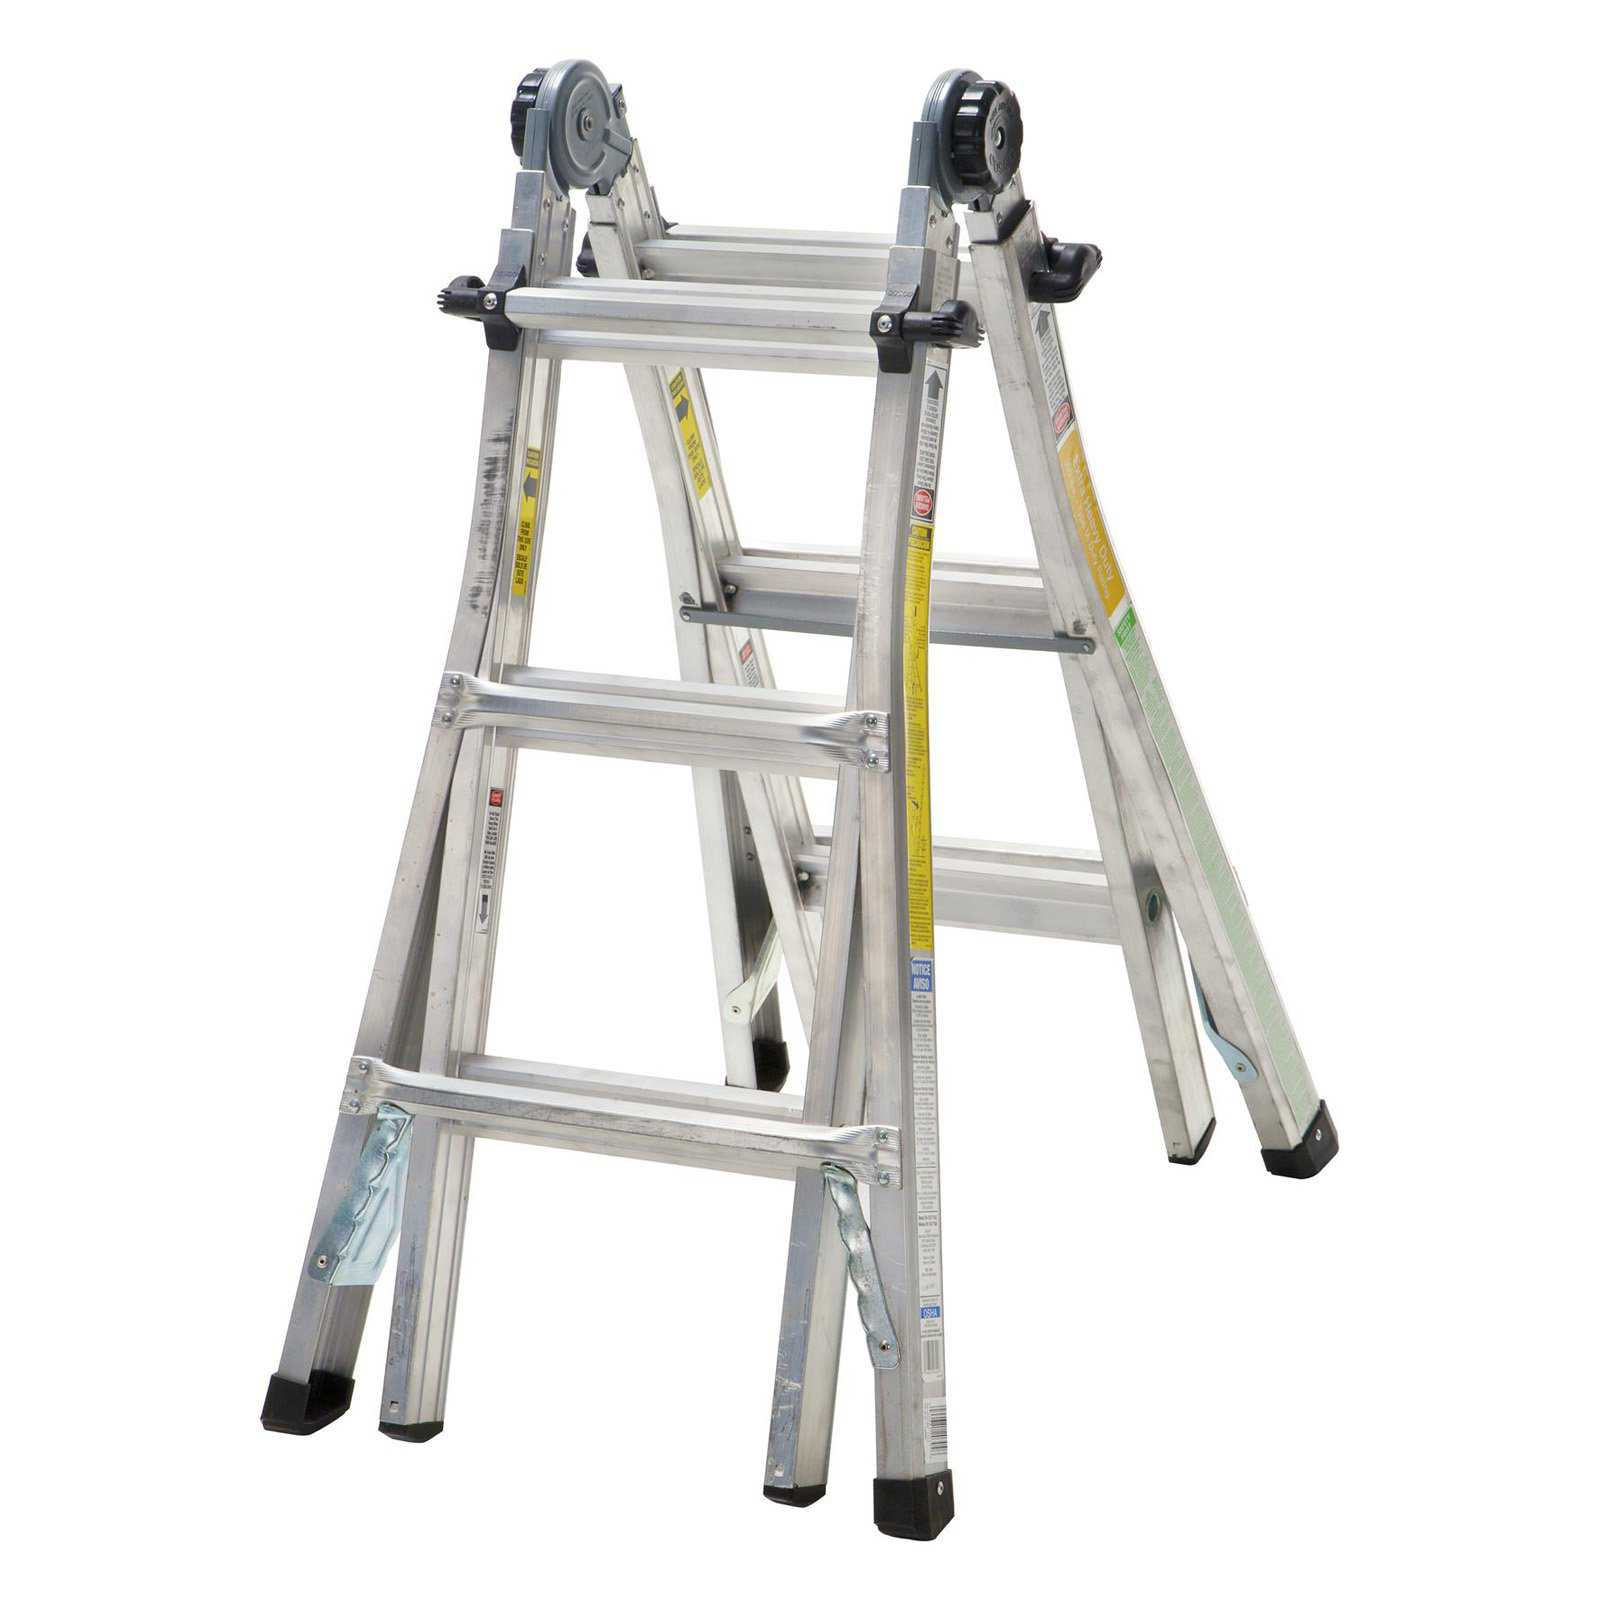 Cosco 18 ft. Reach Aluminum Multi-Position Ladder with 300 lb. Load Capacity Type IA Duty Rating